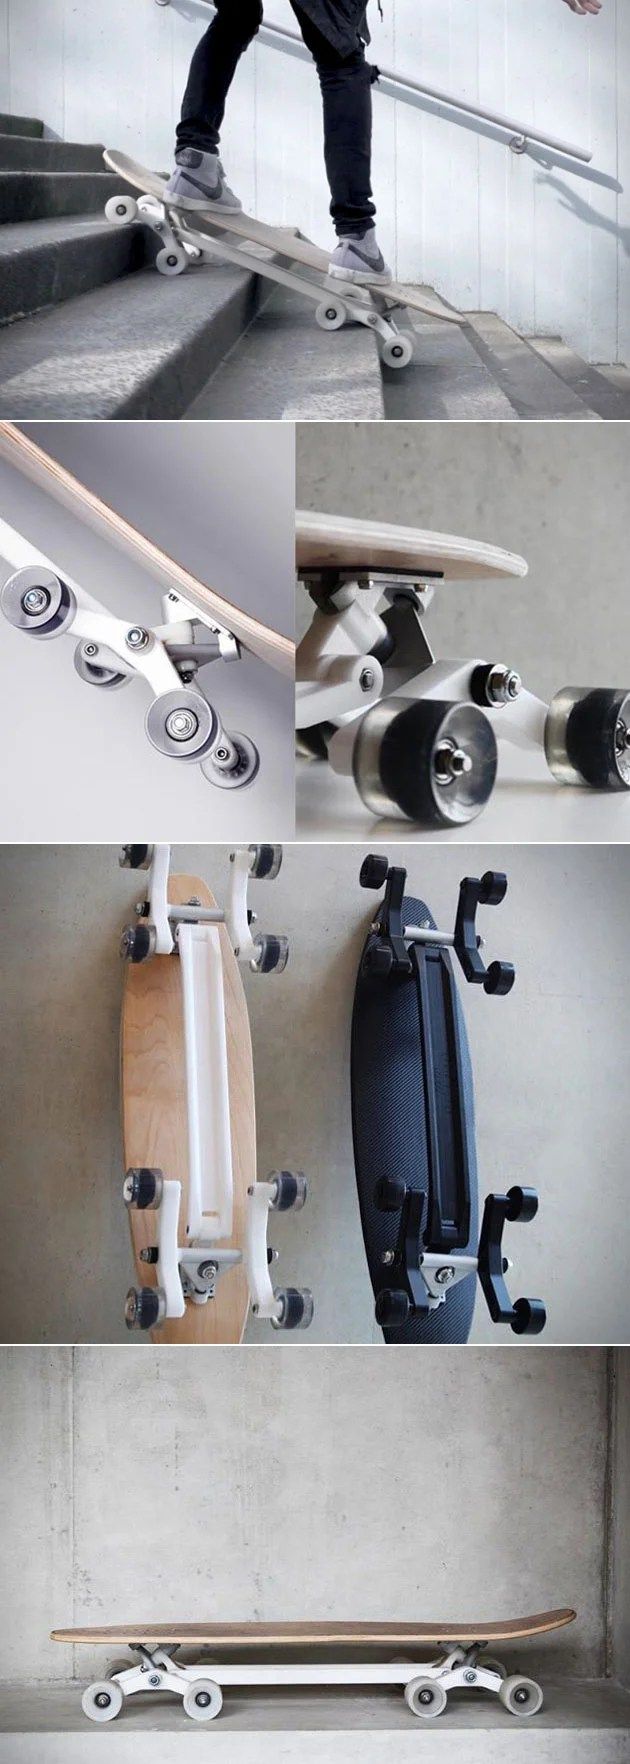 stair-rover-longboard